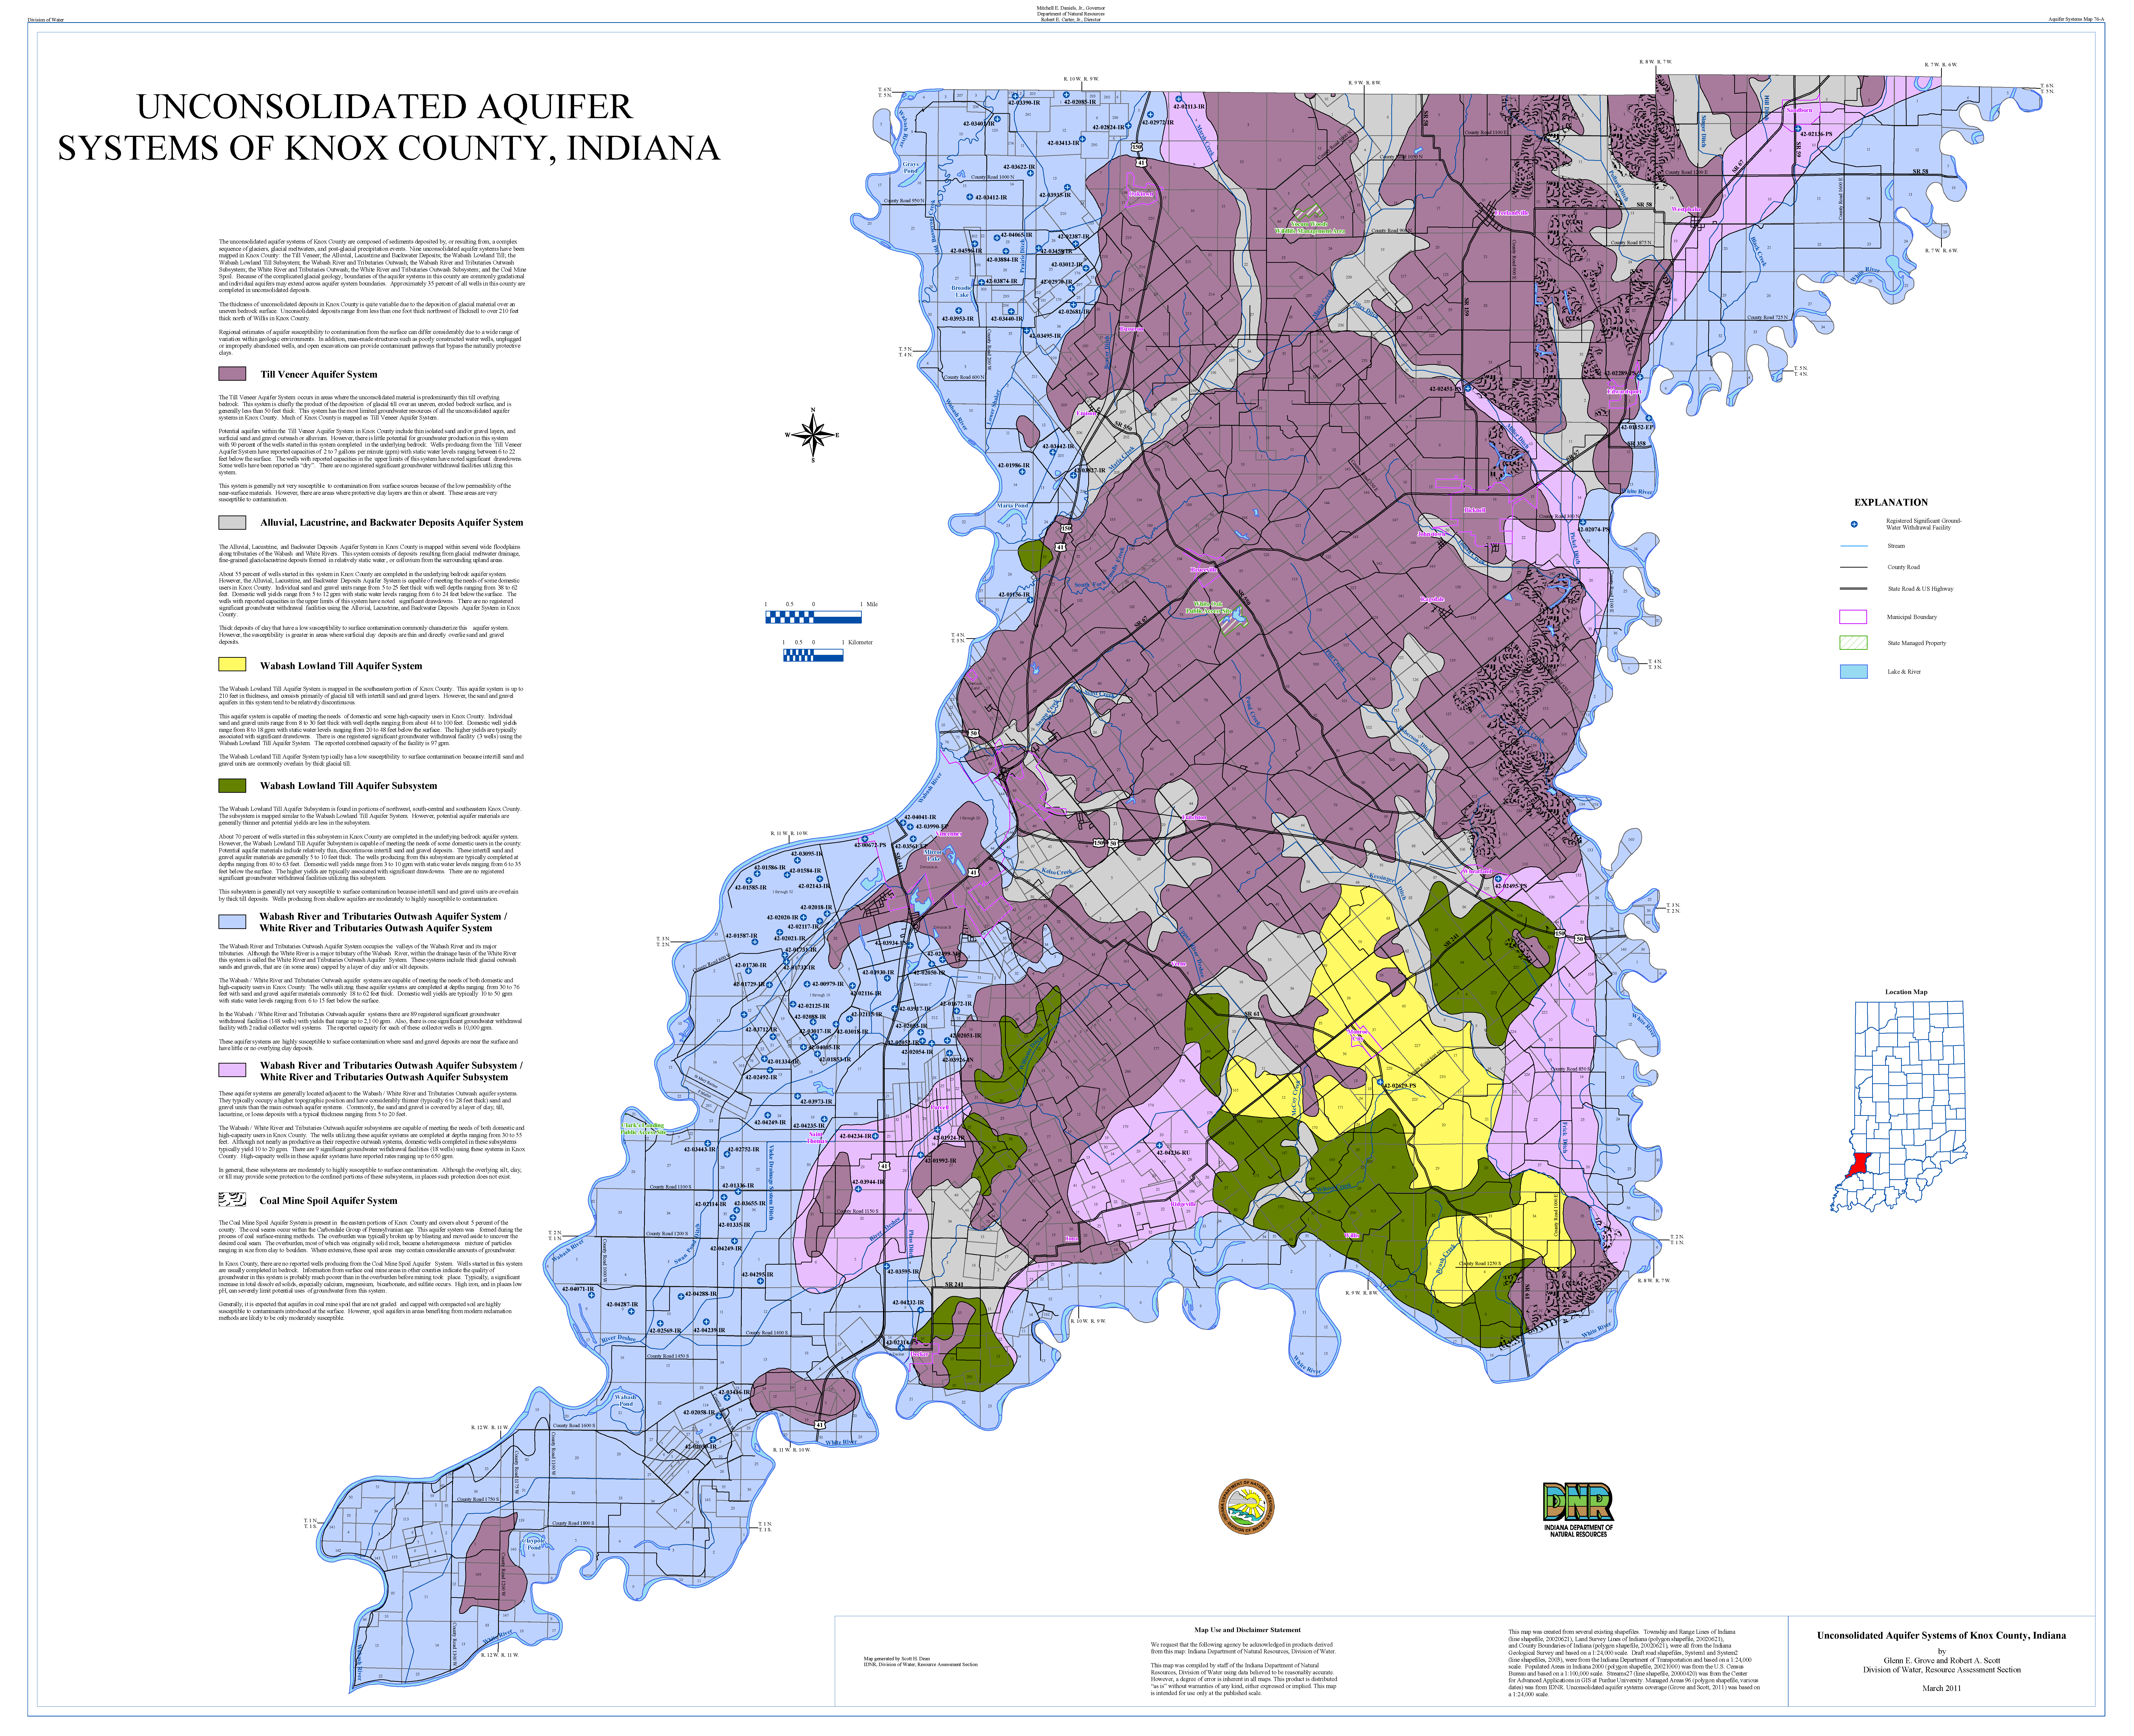 Knox County Indiana Map.Dnr Aquifer Systems Maps 76 A And 76 B Unconsolidated And Bedrock